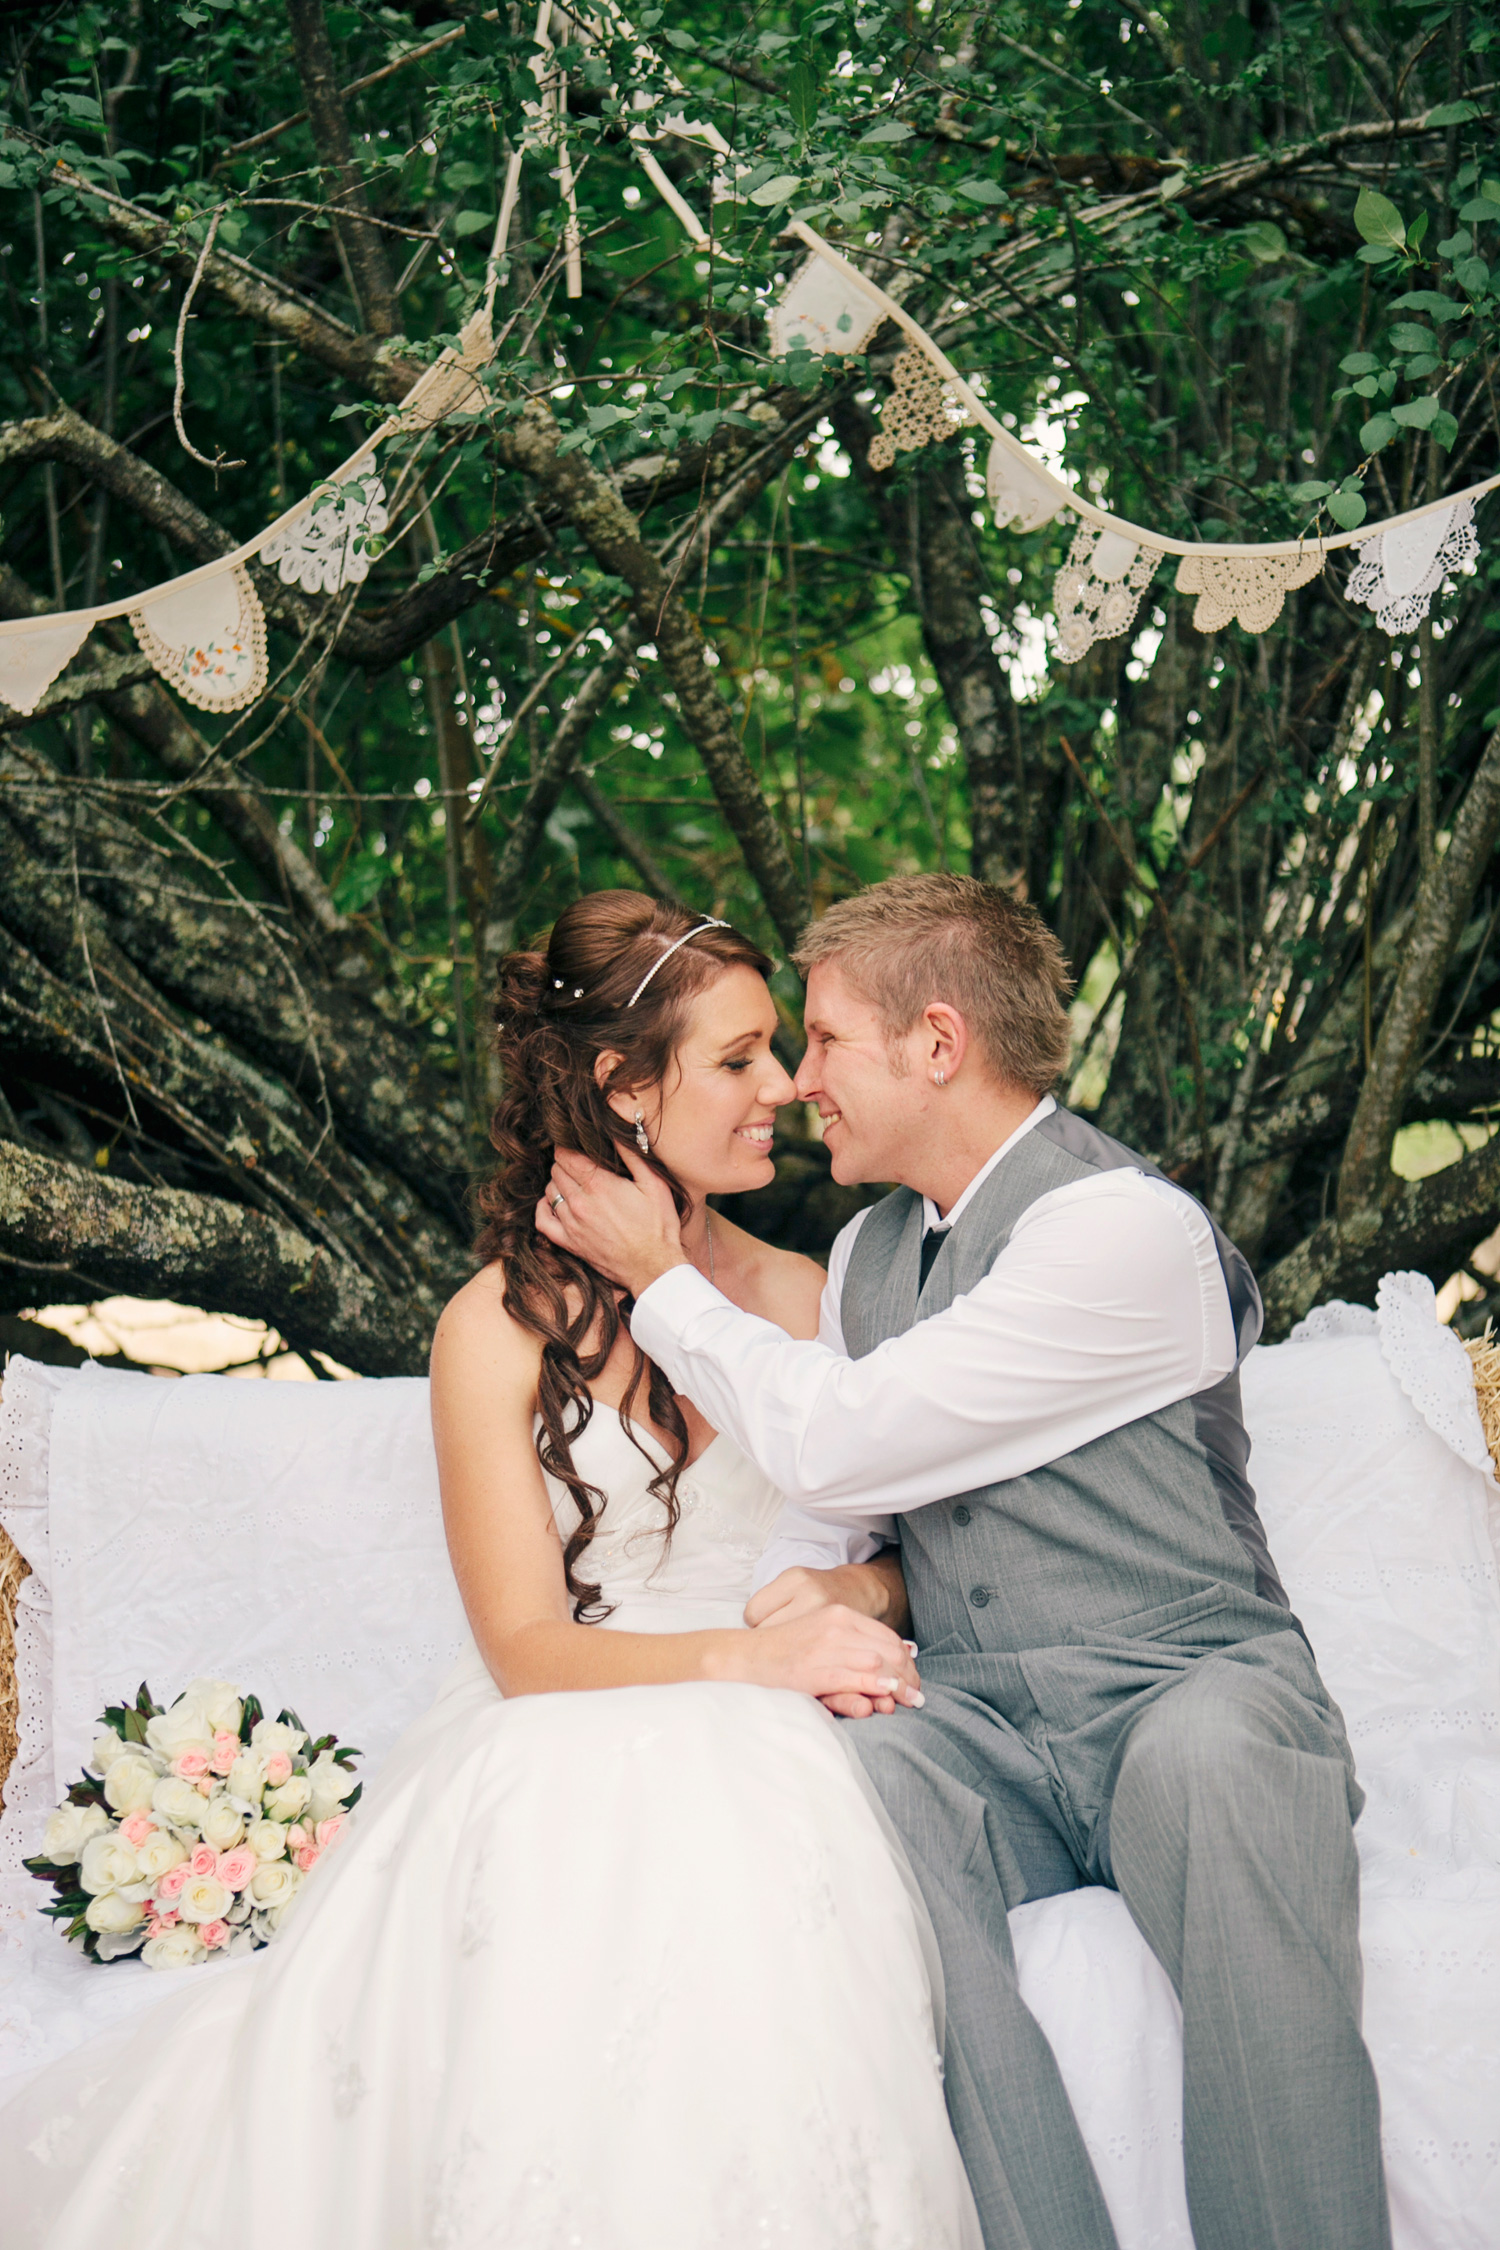 Jane_Chris_Vintage-Rustic-Wedding_045